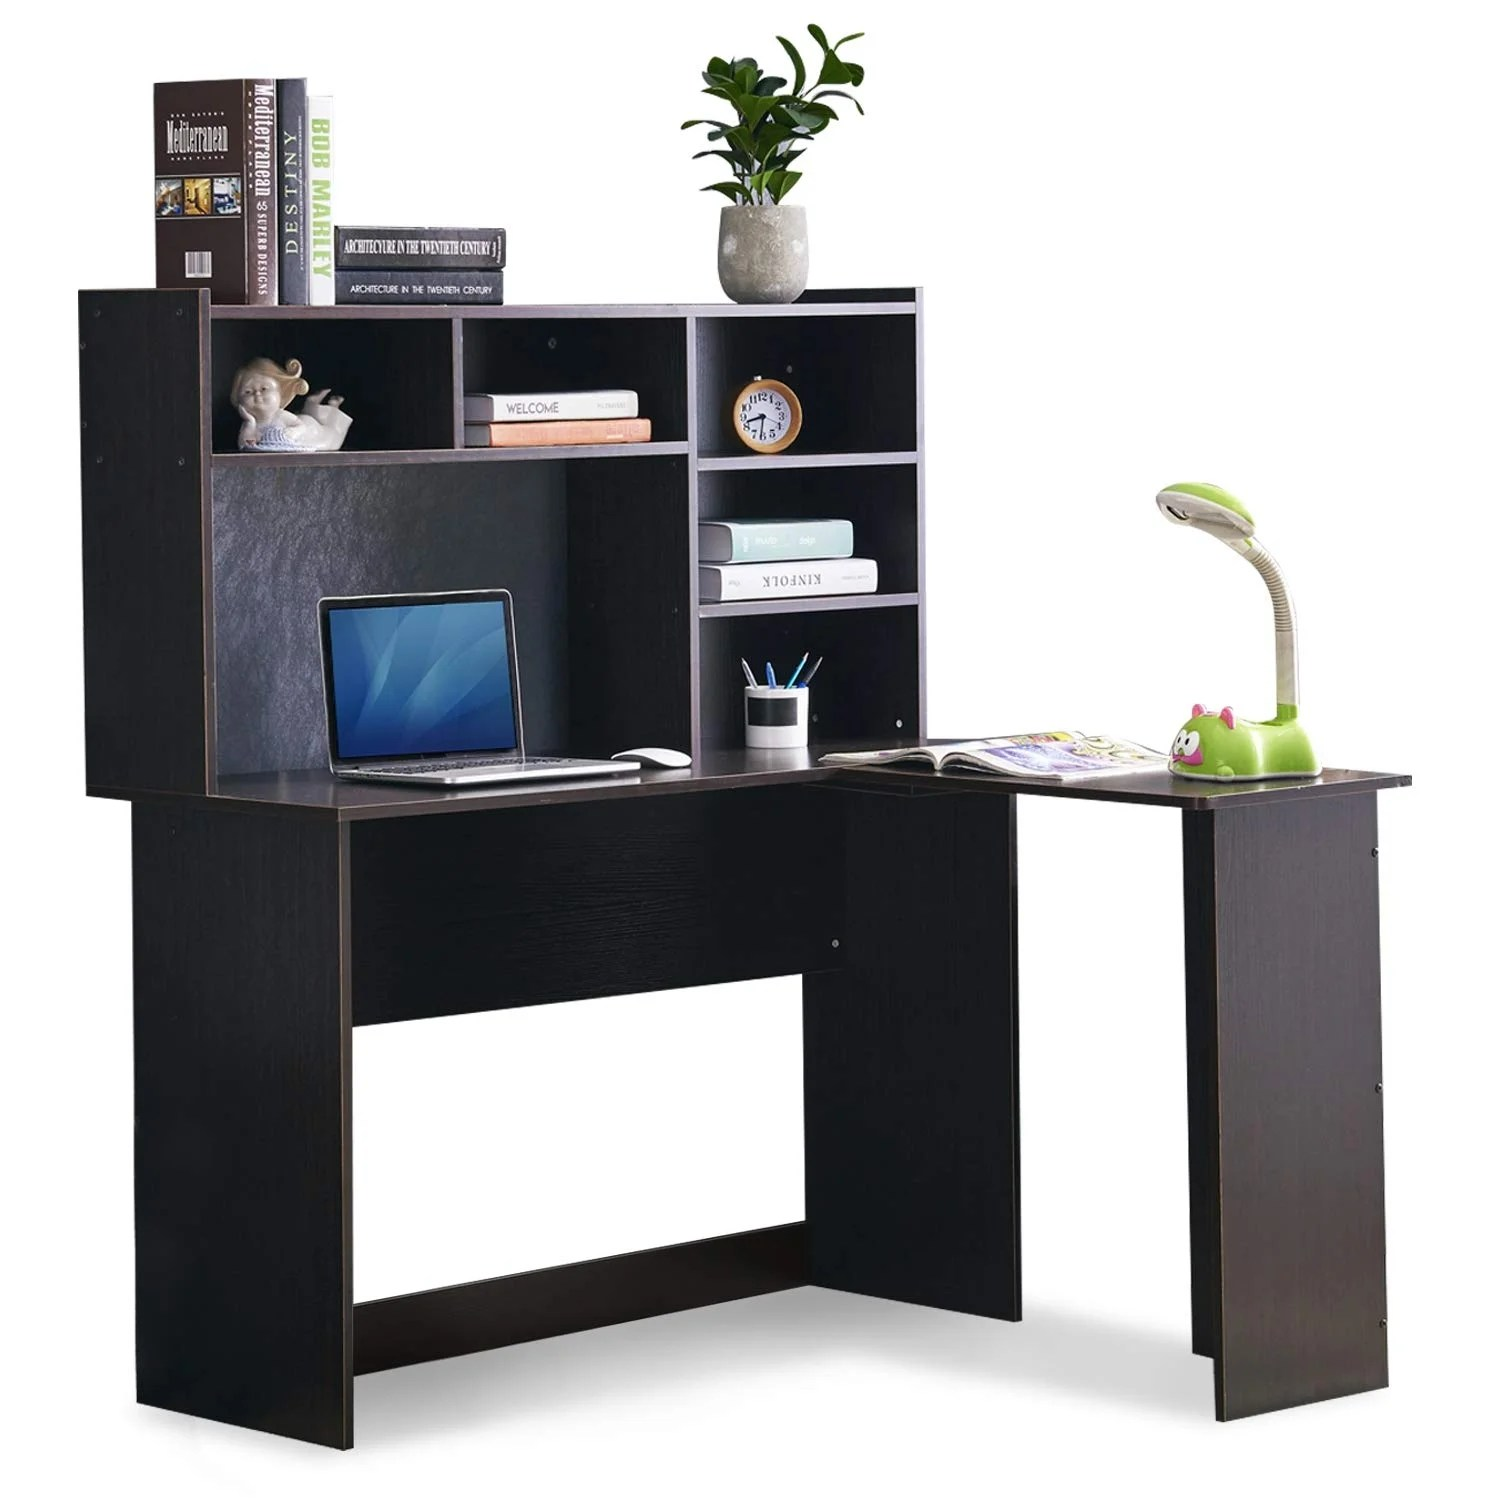 Mcombo Modern Computer Desk With Hutch L Shaped Gaming Desk Corner Desk With Shelves For Small Space Home Office Overstock 30386723